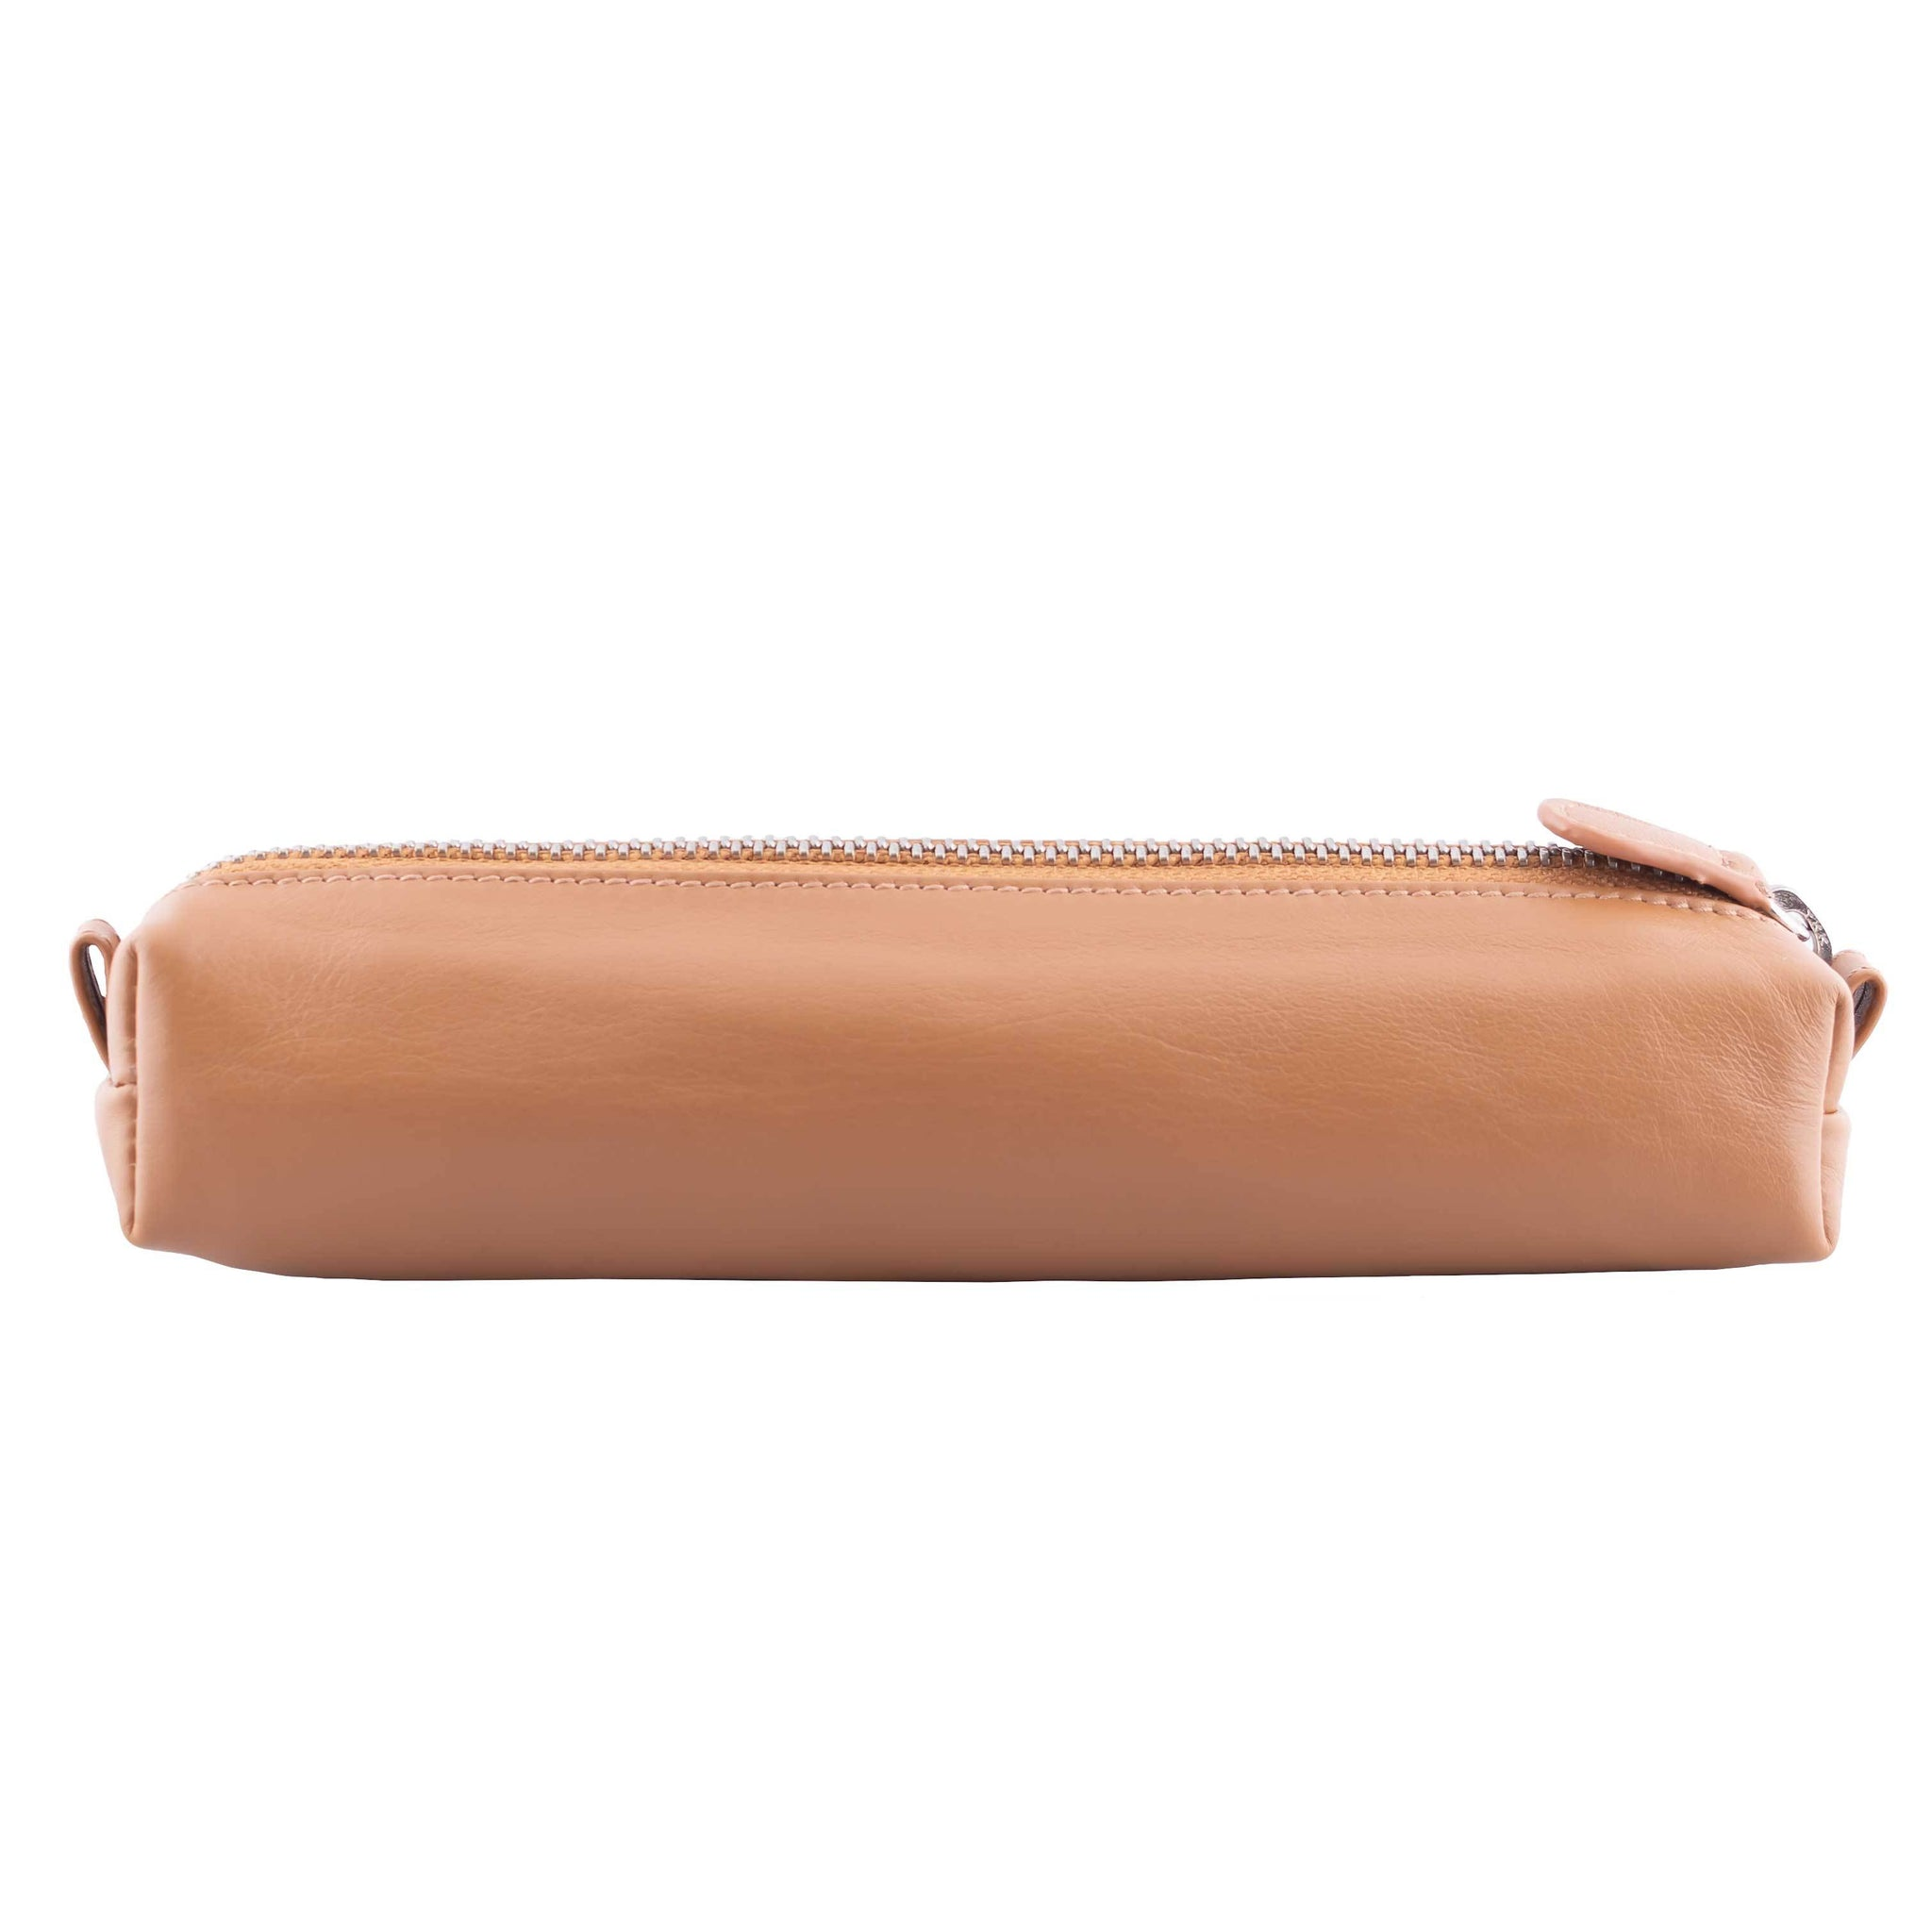 Multi-Purpose Zippered Leather Pen Pencil Case in Various Colors - V Tan